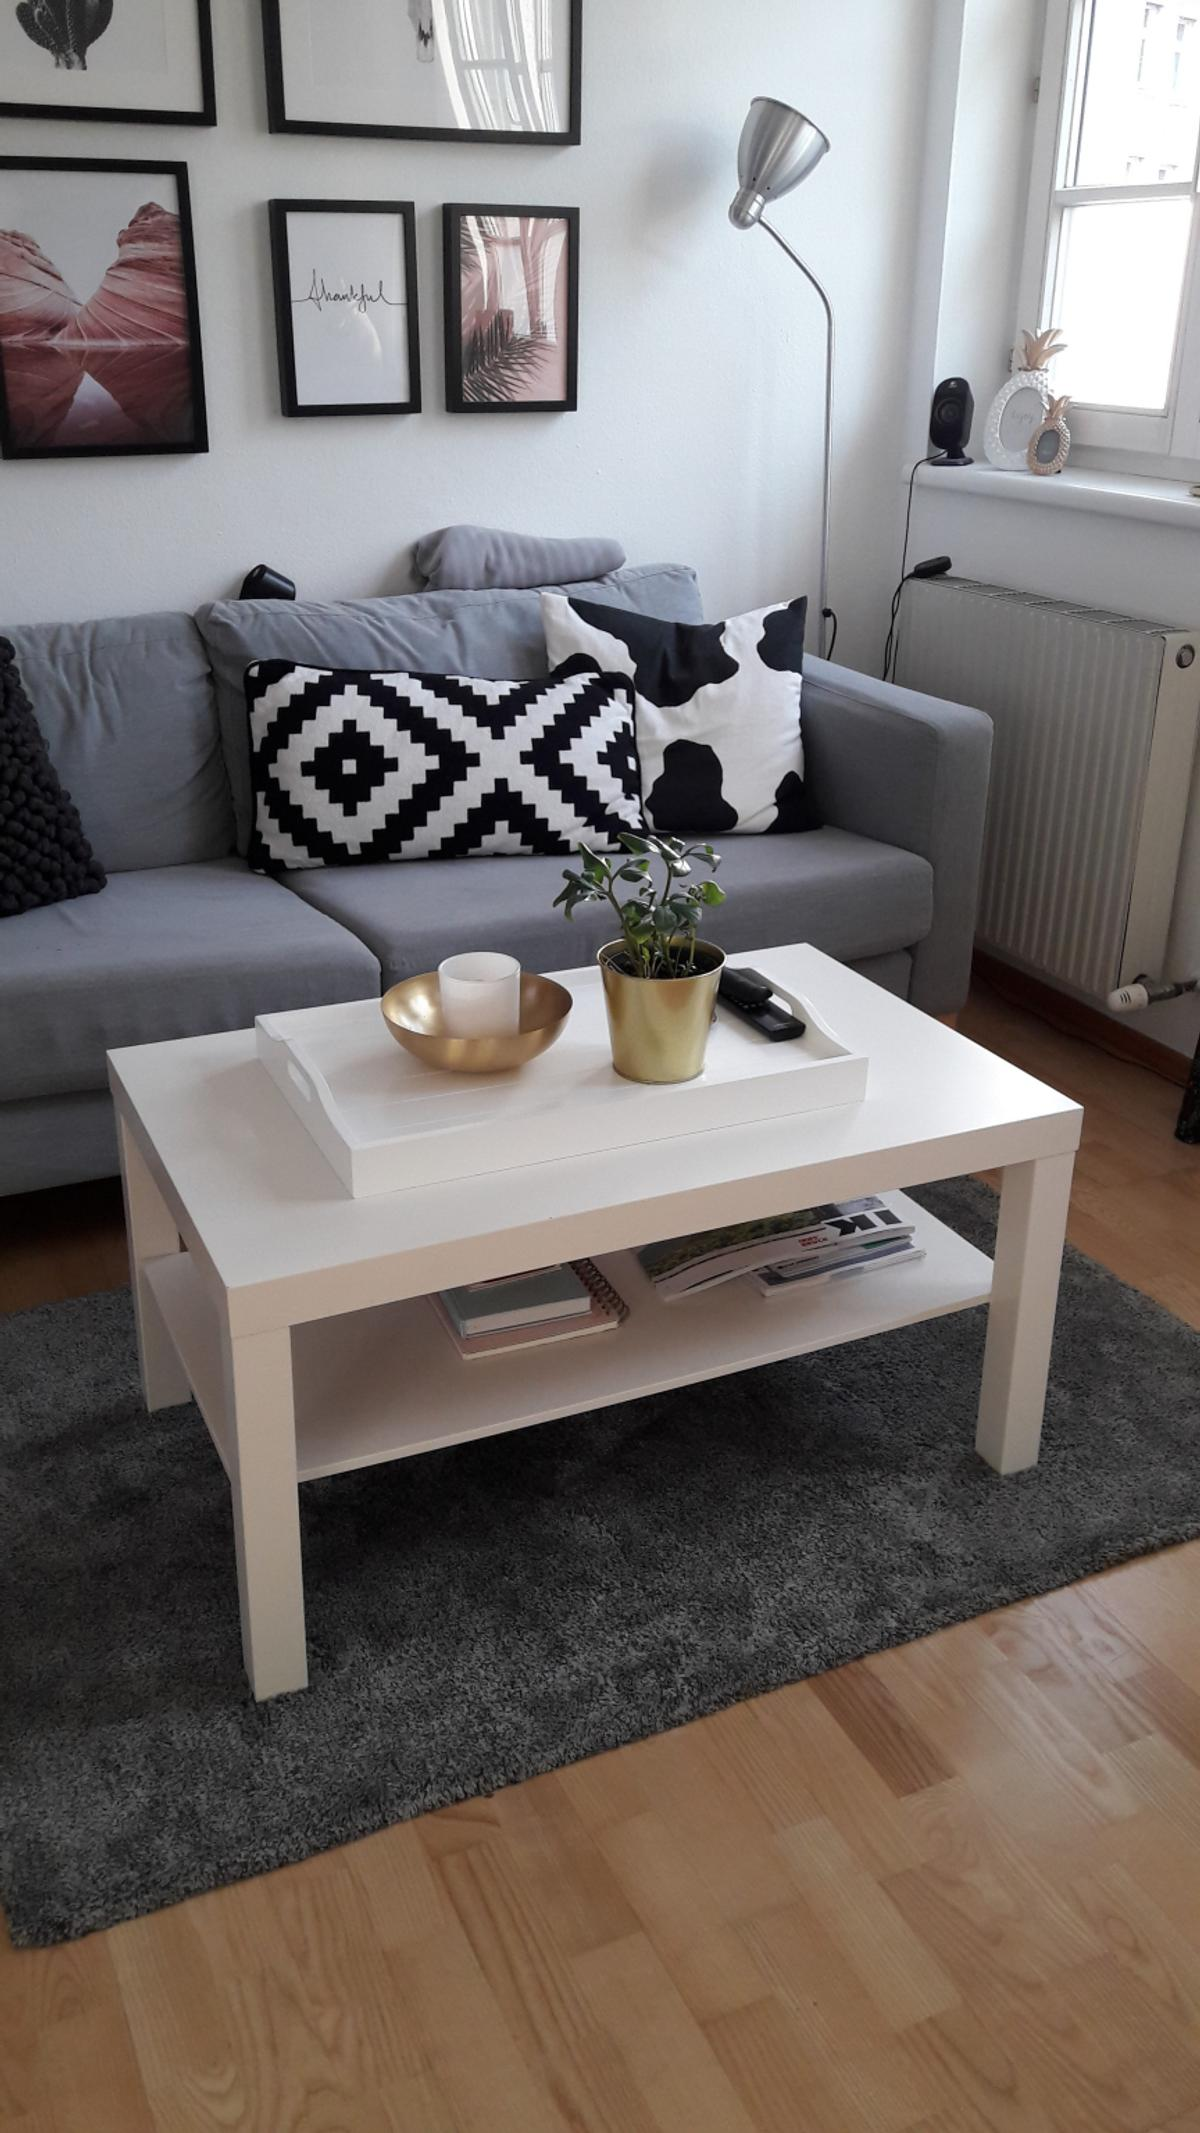 Ikea Lack Couchtisch In 6020 Innsbruck For 13 00 For Sale Shpock